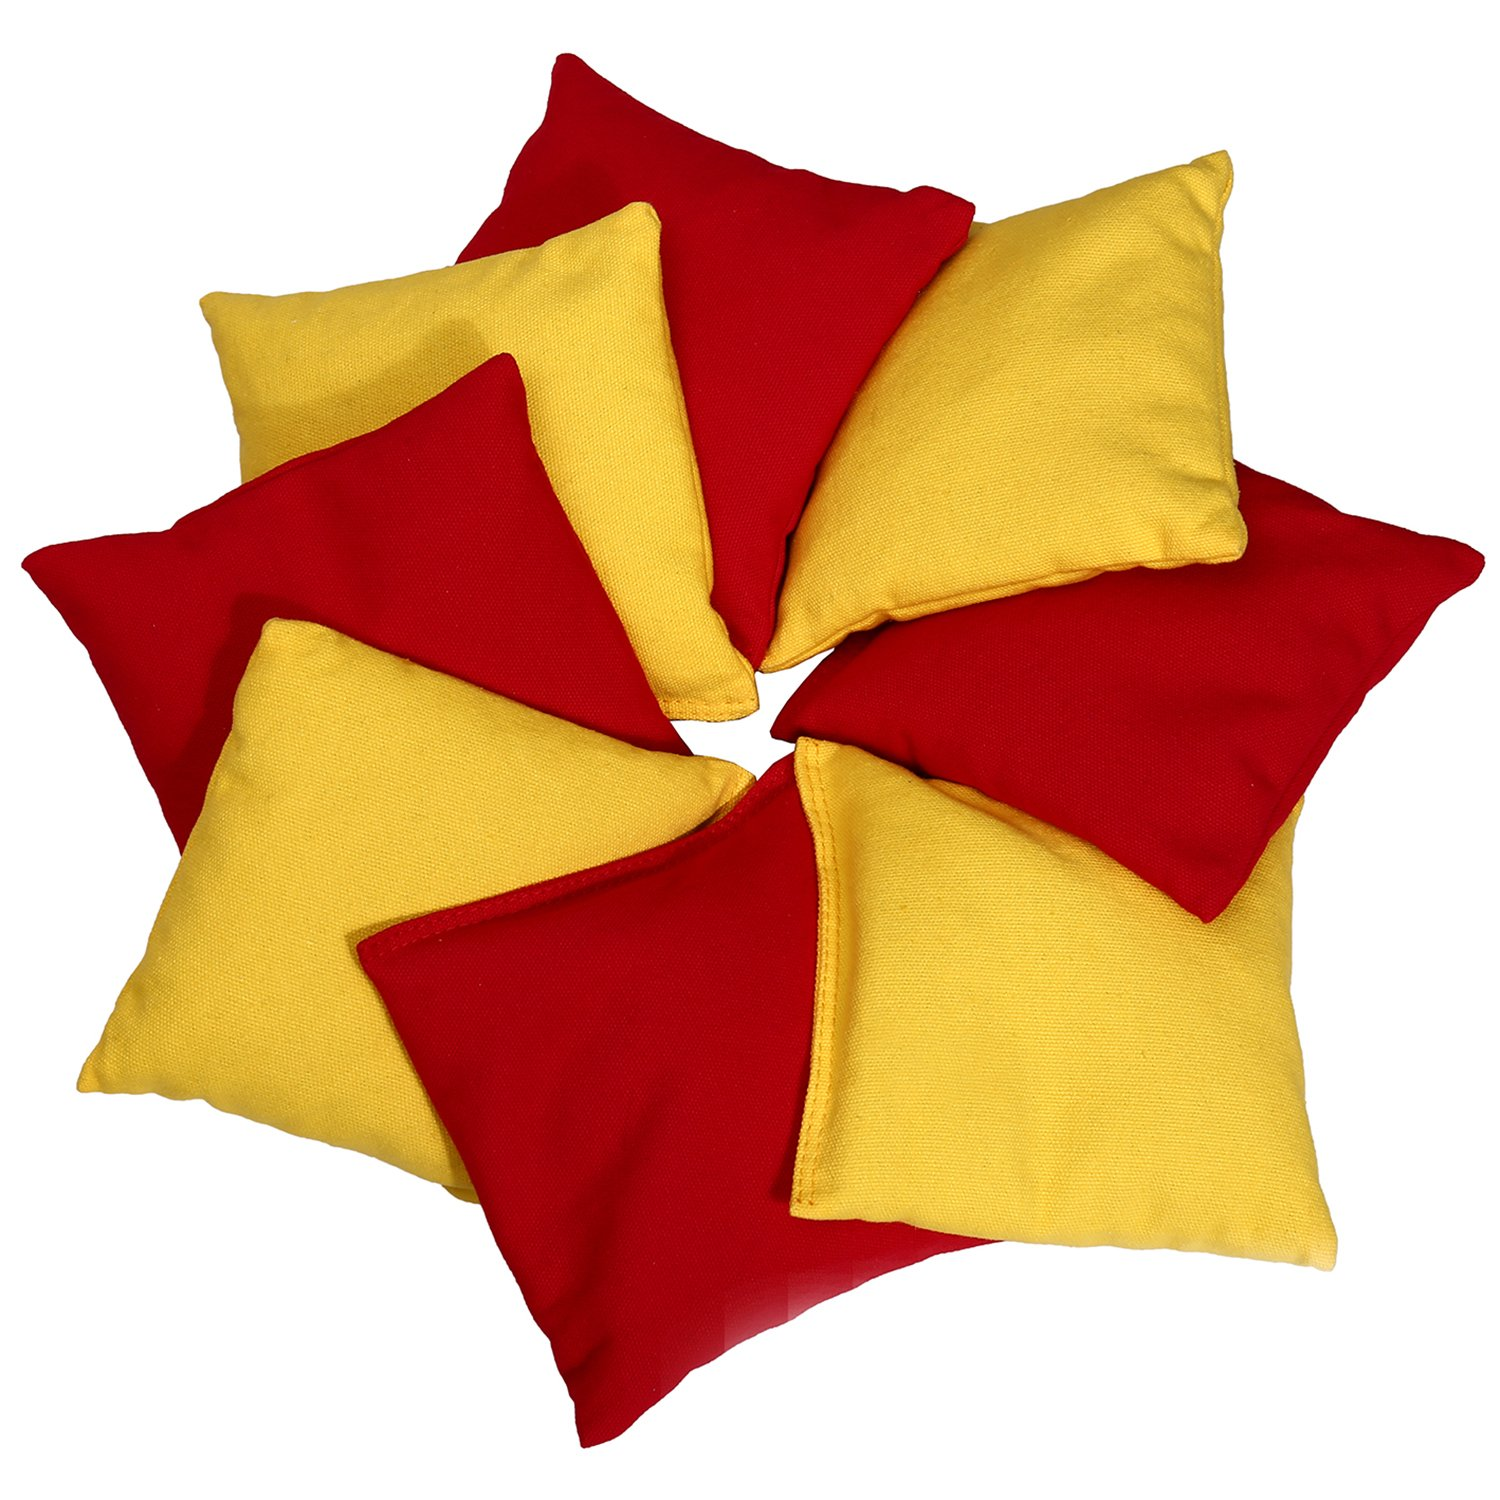 Victoria Young Set of 8 Bean Bags Carnival Toss Game, Red & Yellow